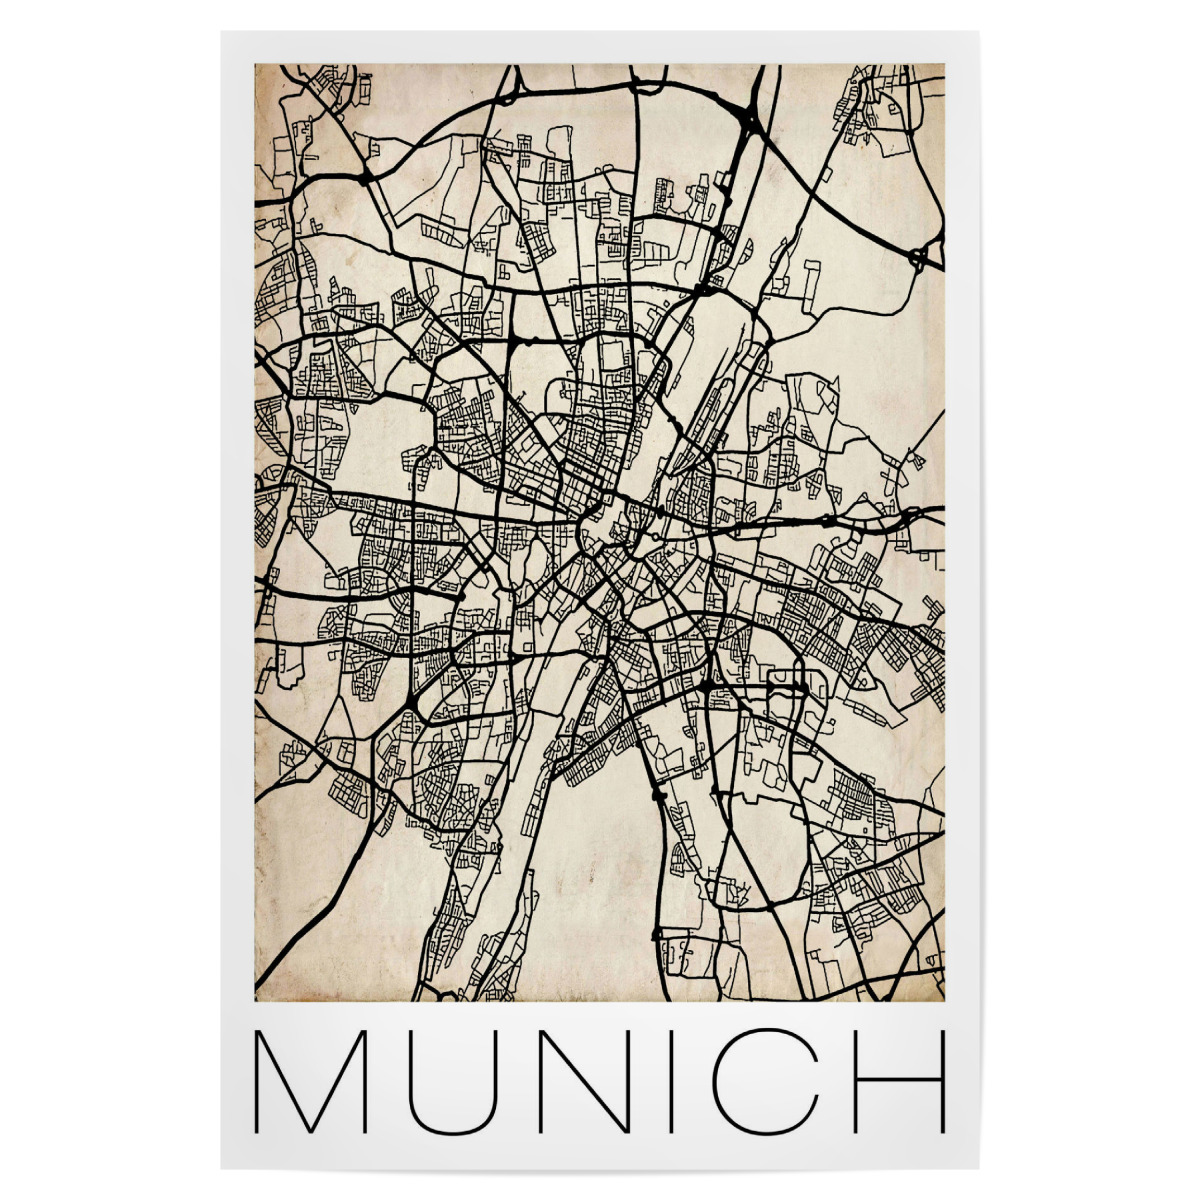 Retro City Map Munich als Poster bei artboxONE kaufen